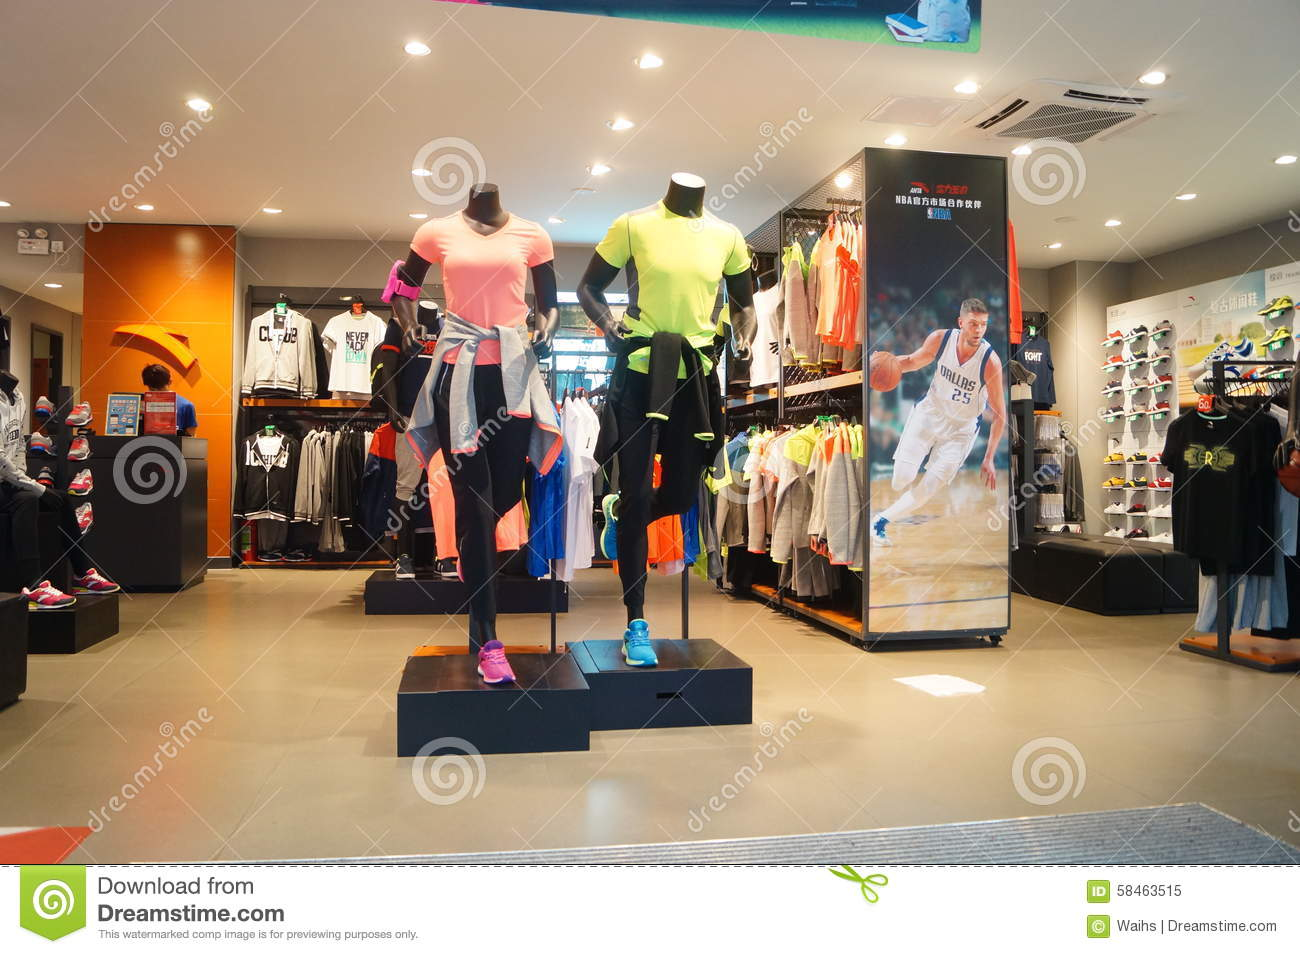 Sporting clothes stores